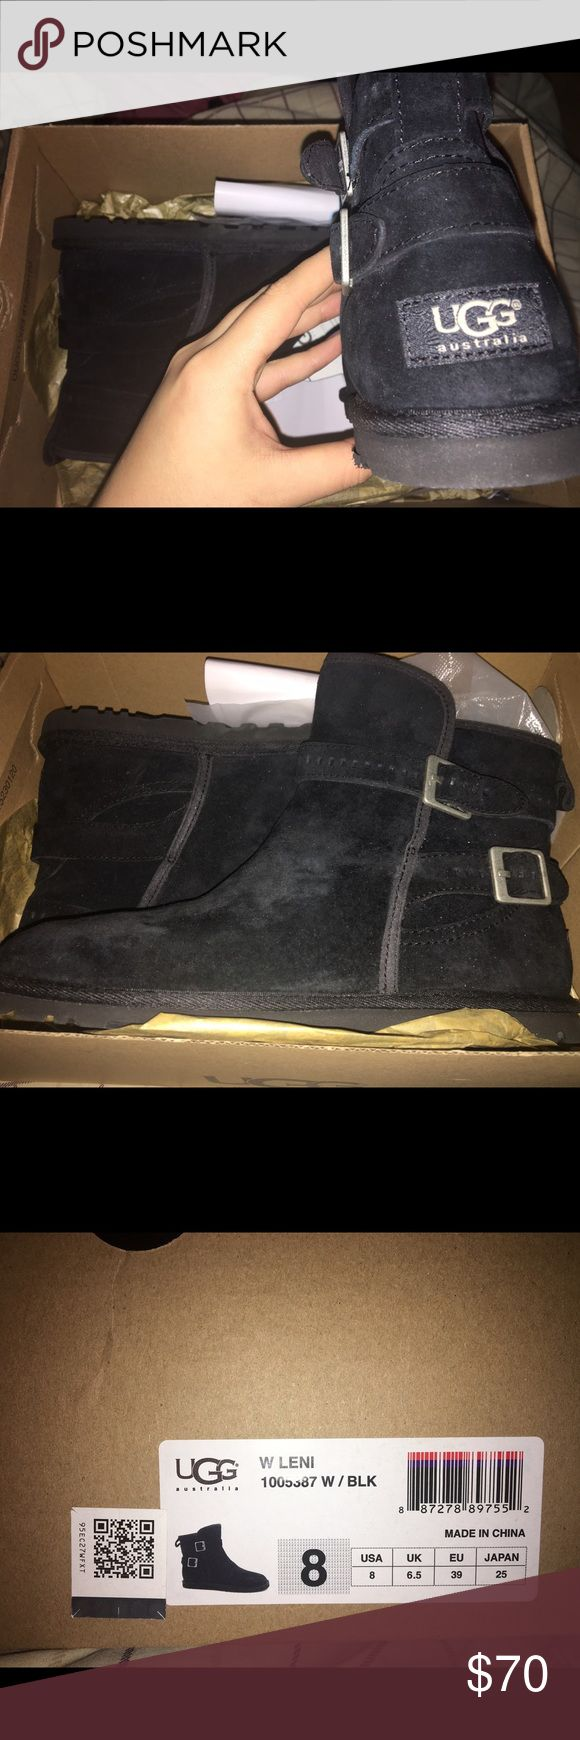 Brand New Uggs Bought at the Ugg store, never wore them. UGG Shoes Ankle Boots & Booties